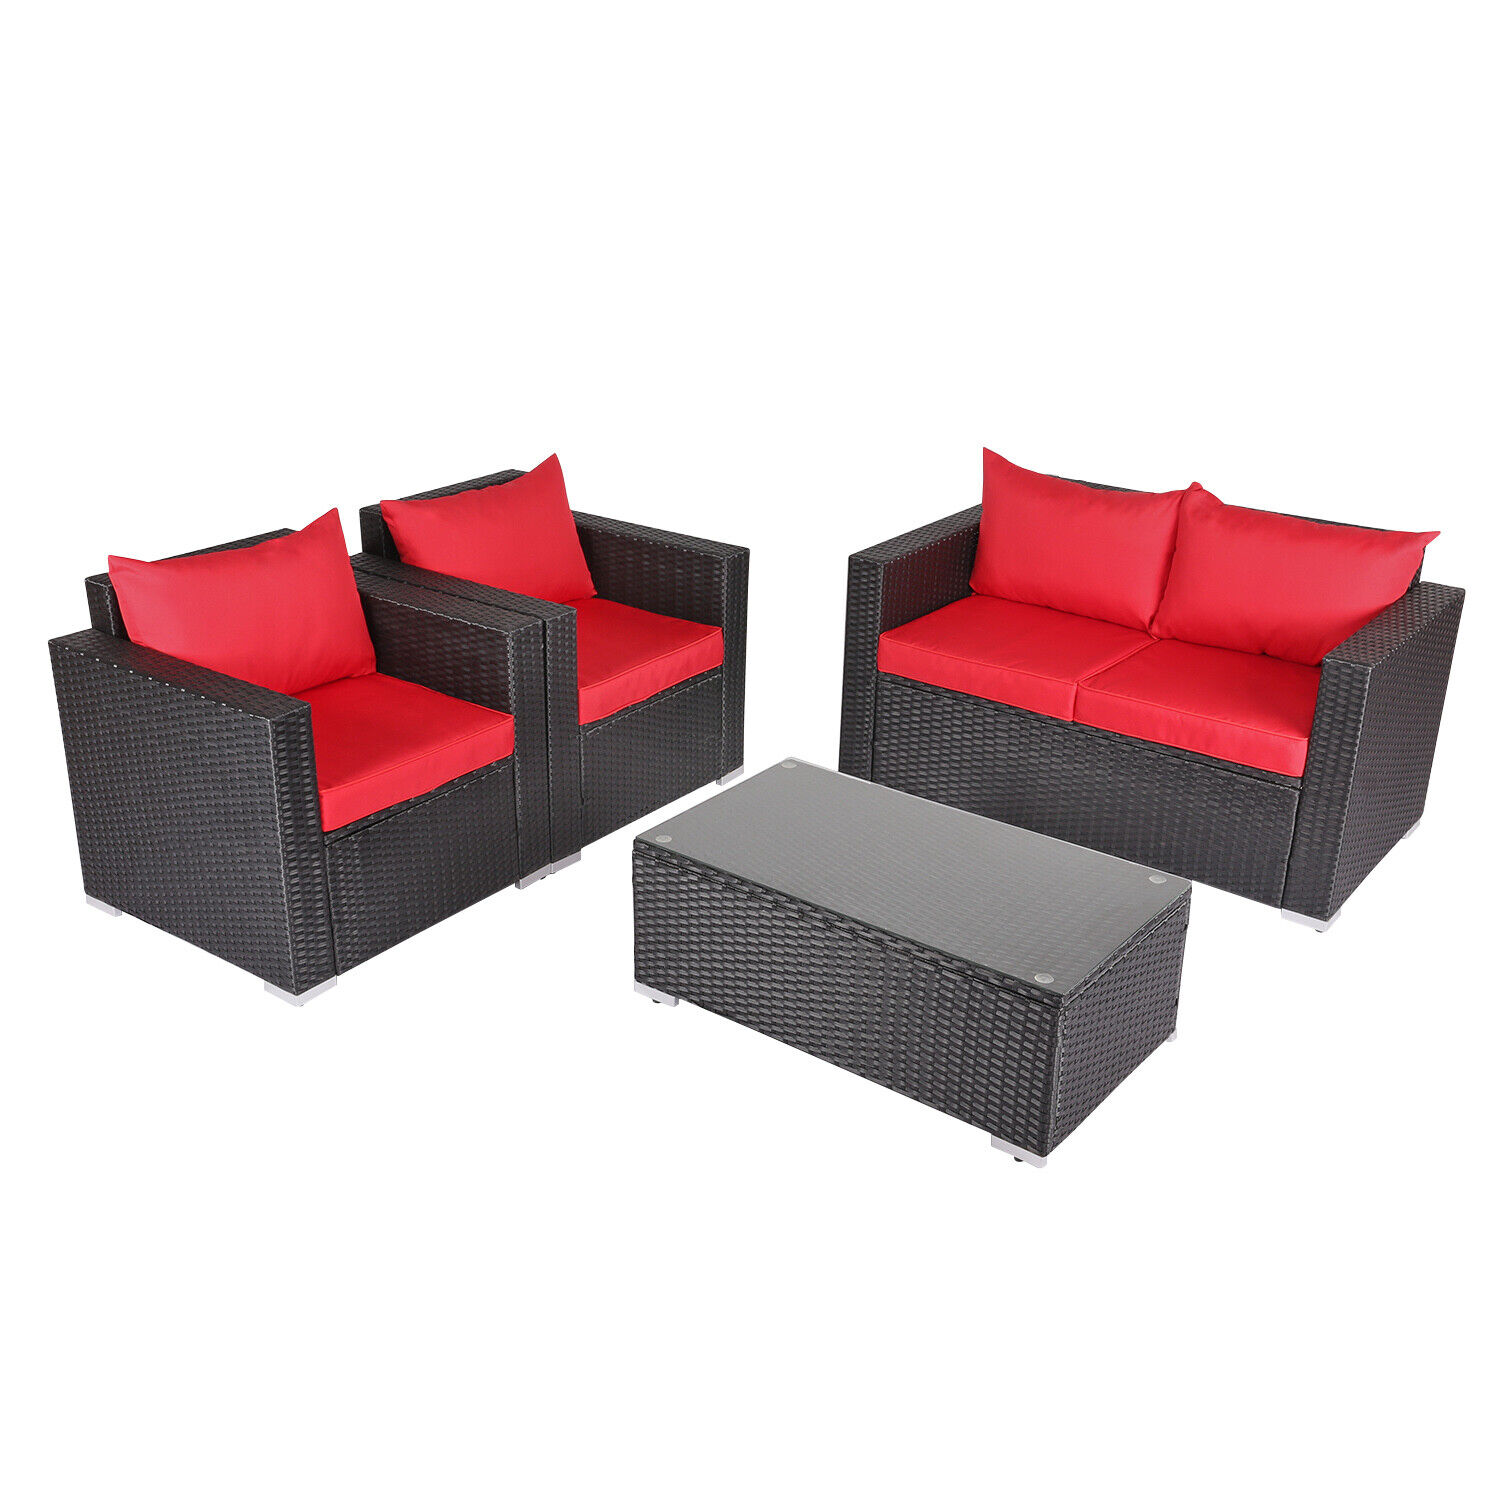 Kinbor 9-piece Outdoor Wicker Sofa Set Patio Sectional Furniture Set w/  Cushions